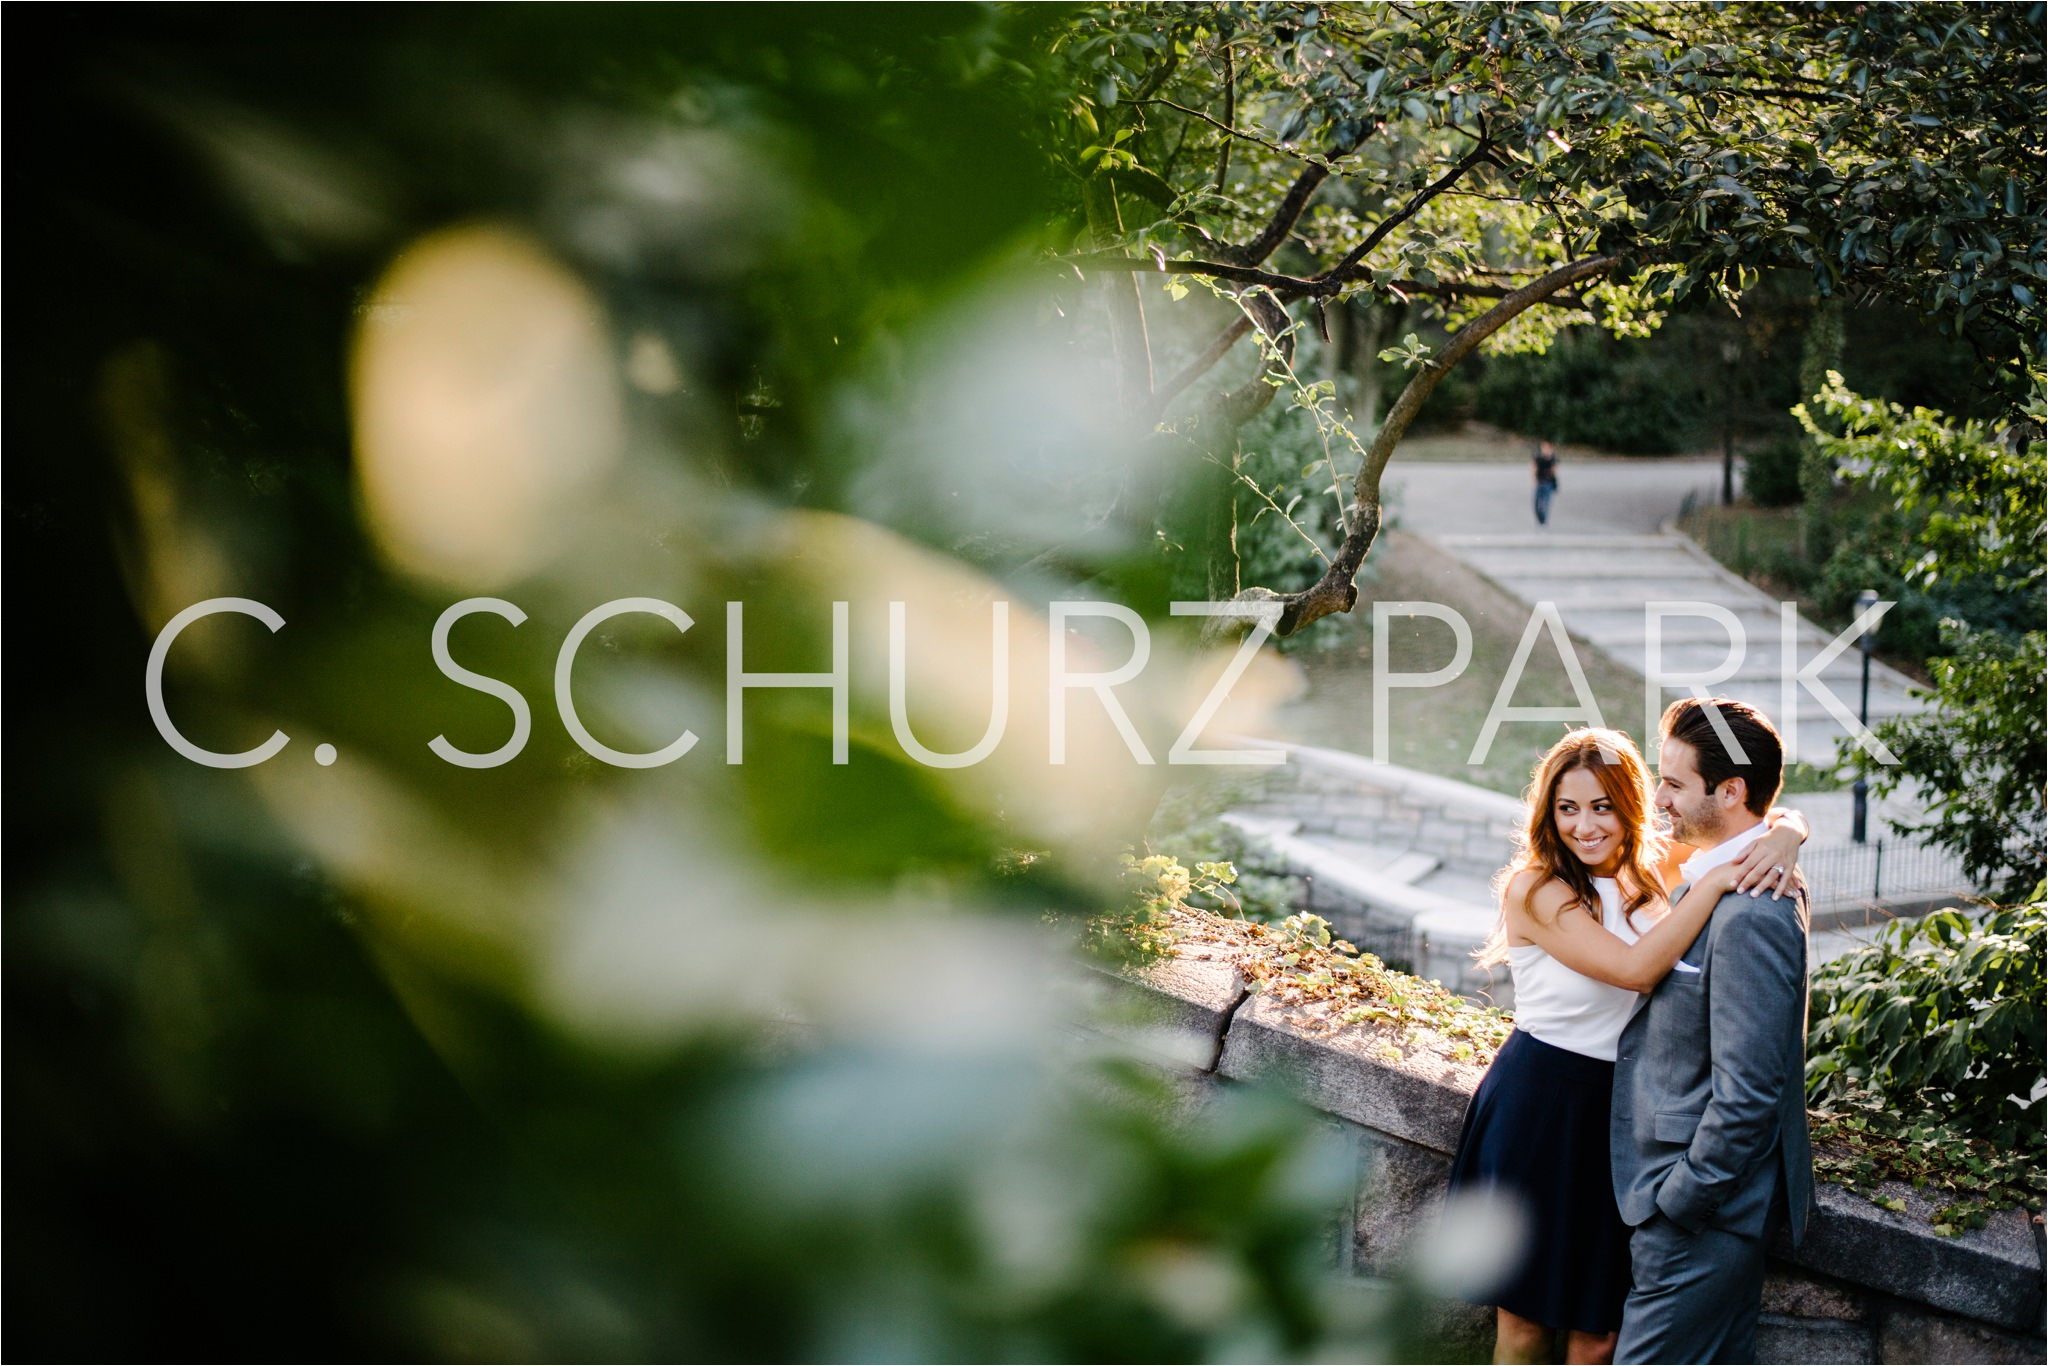 NYC Engagement Locations, Carl Schurz Park, Brian Hatton Photography